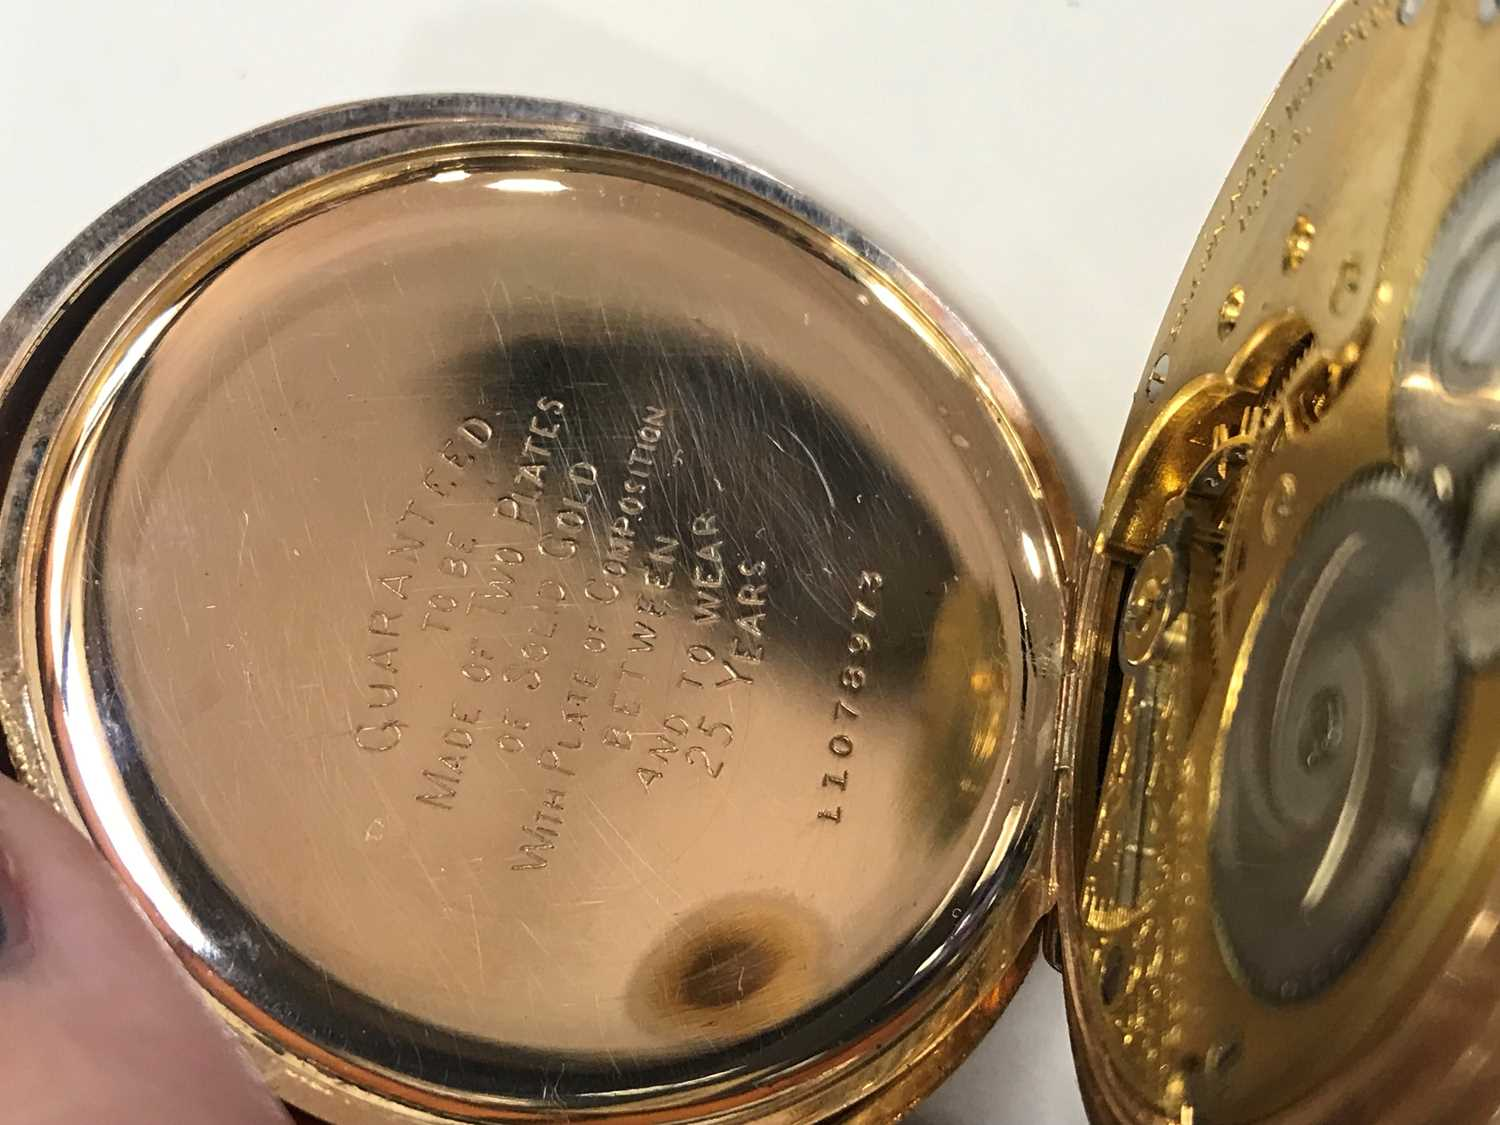 AN ELGIN FULL HUNTER GOLD PLATED POCKET WATCH - Image 2 of 3